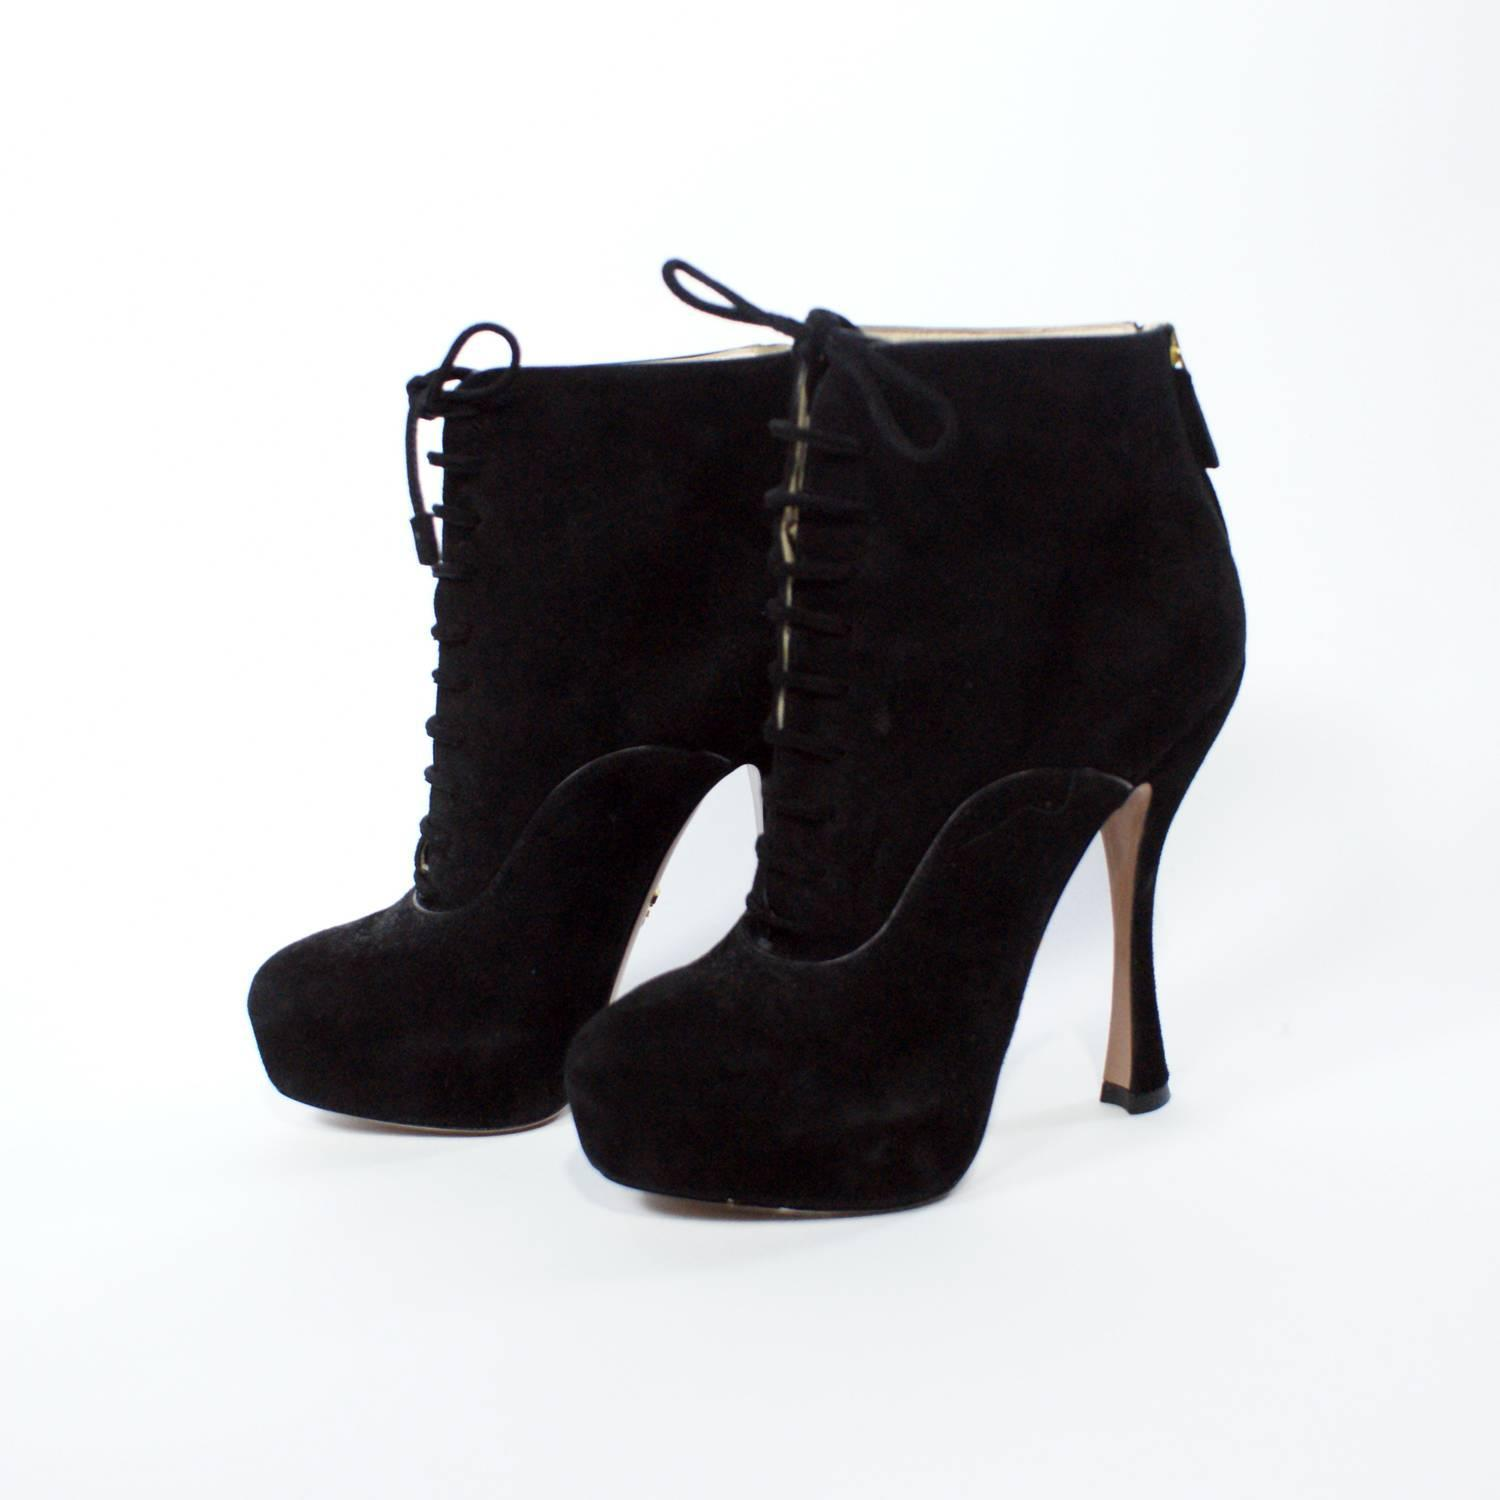 prada lace up stiletto high heel ankle boots at 1stdibs